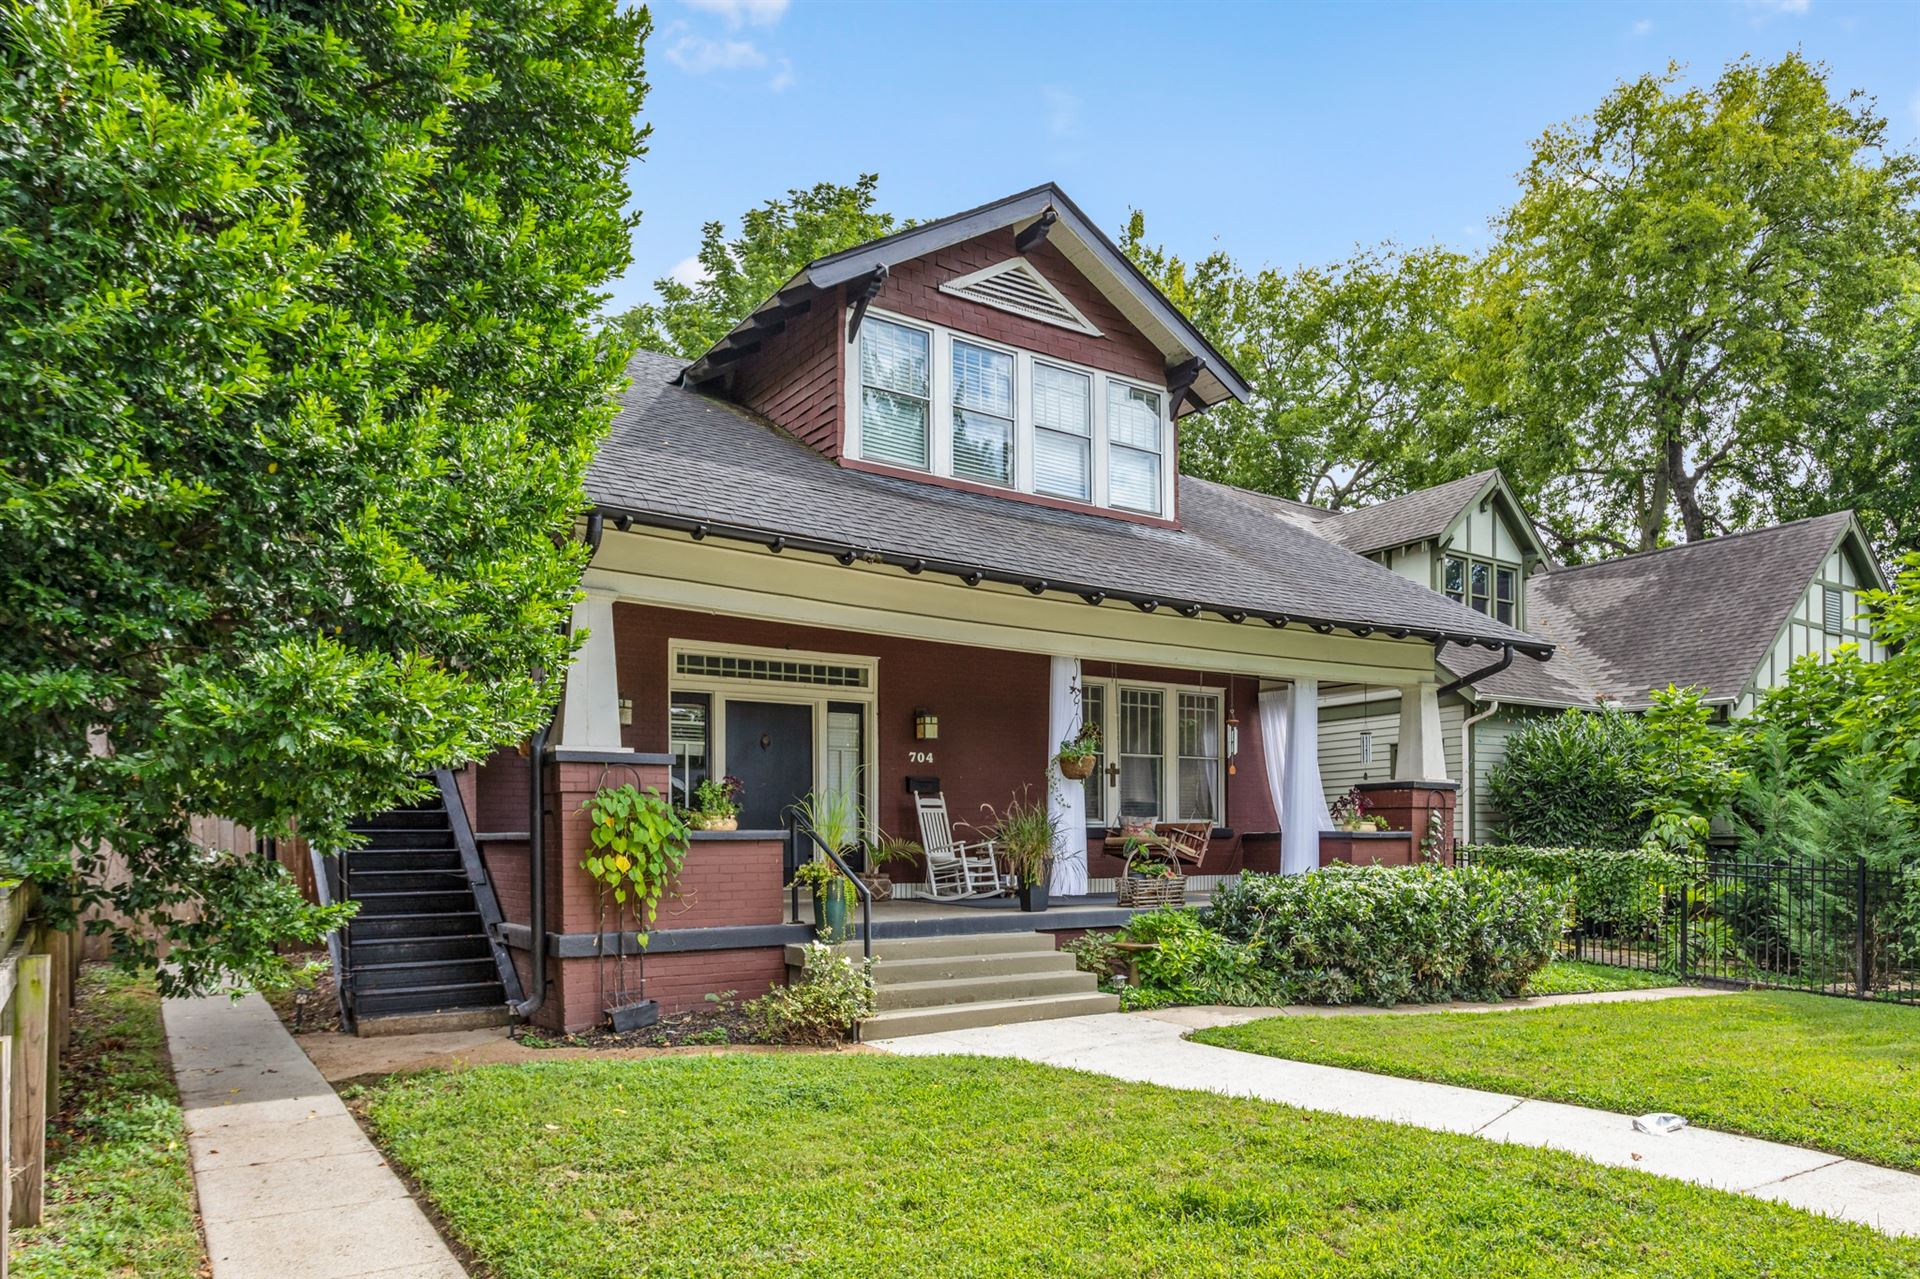 704 Shelby Ave, Nashville, TN 37206 - MLS#: 2224575